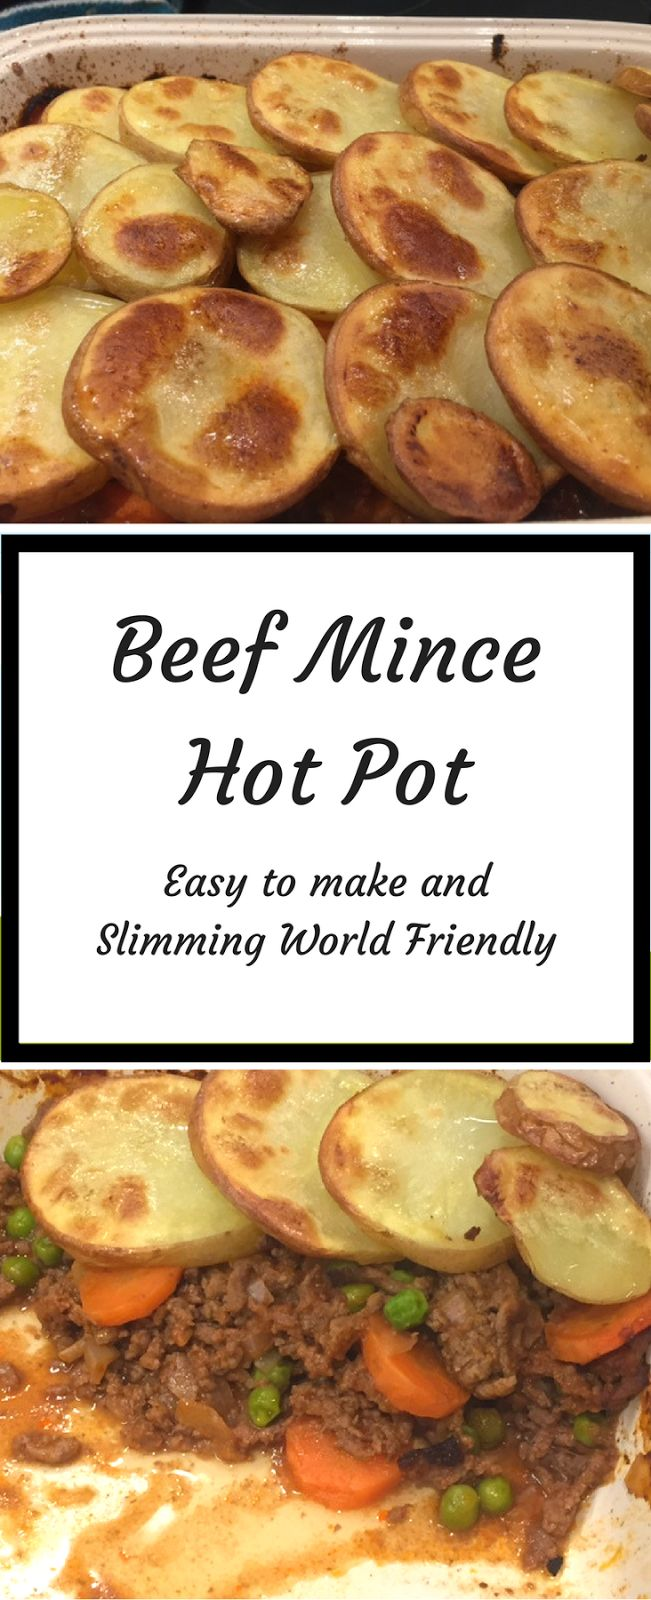 I thought about a twist on the traditional hotpot. So, instead of chunks of lamb or beef, I'd use mince. I left the skin on the potatoes, because why not, and It turned out very well. My husband wolfed it down- there were leftovers for lunch and I would make it again!